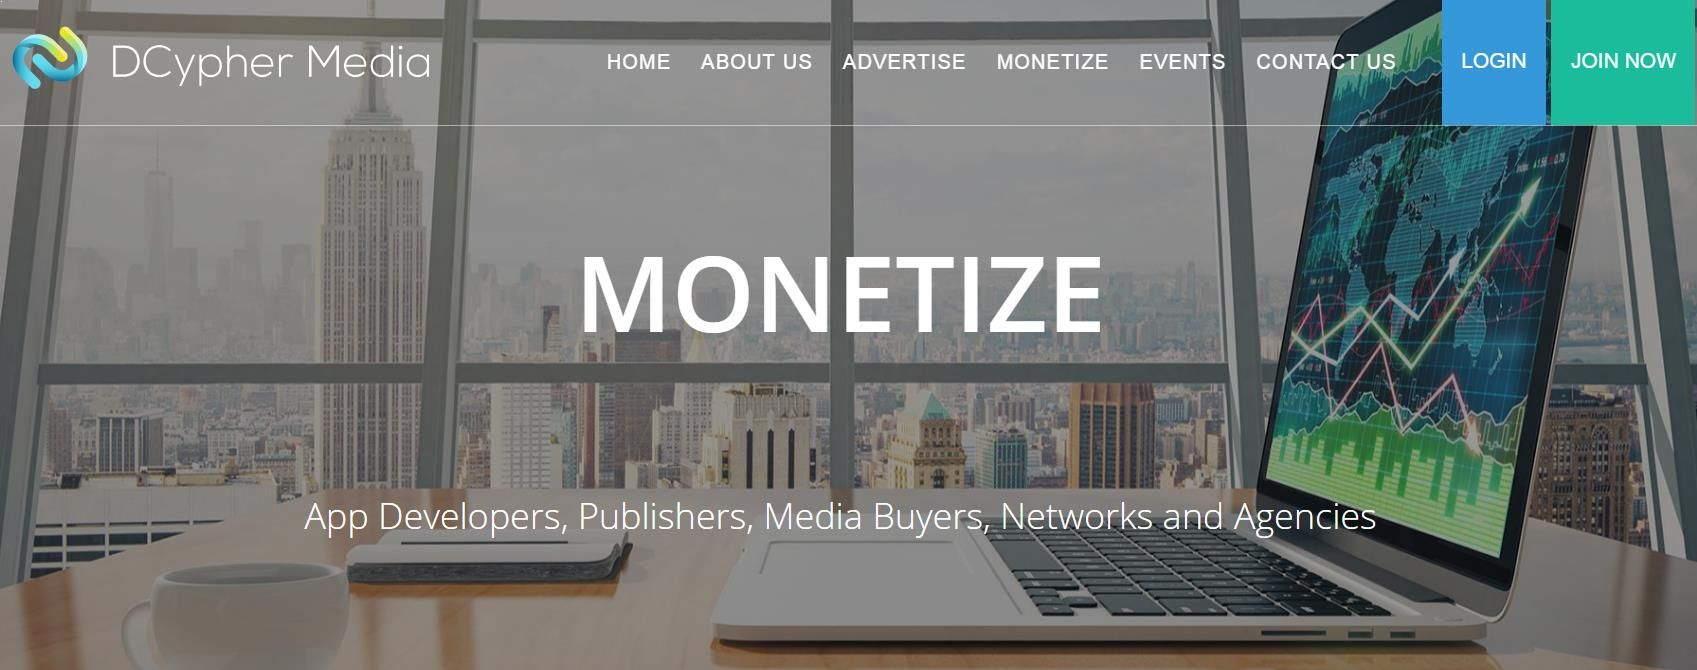 DCypher Media Review Mobile Advertising And CPA Network